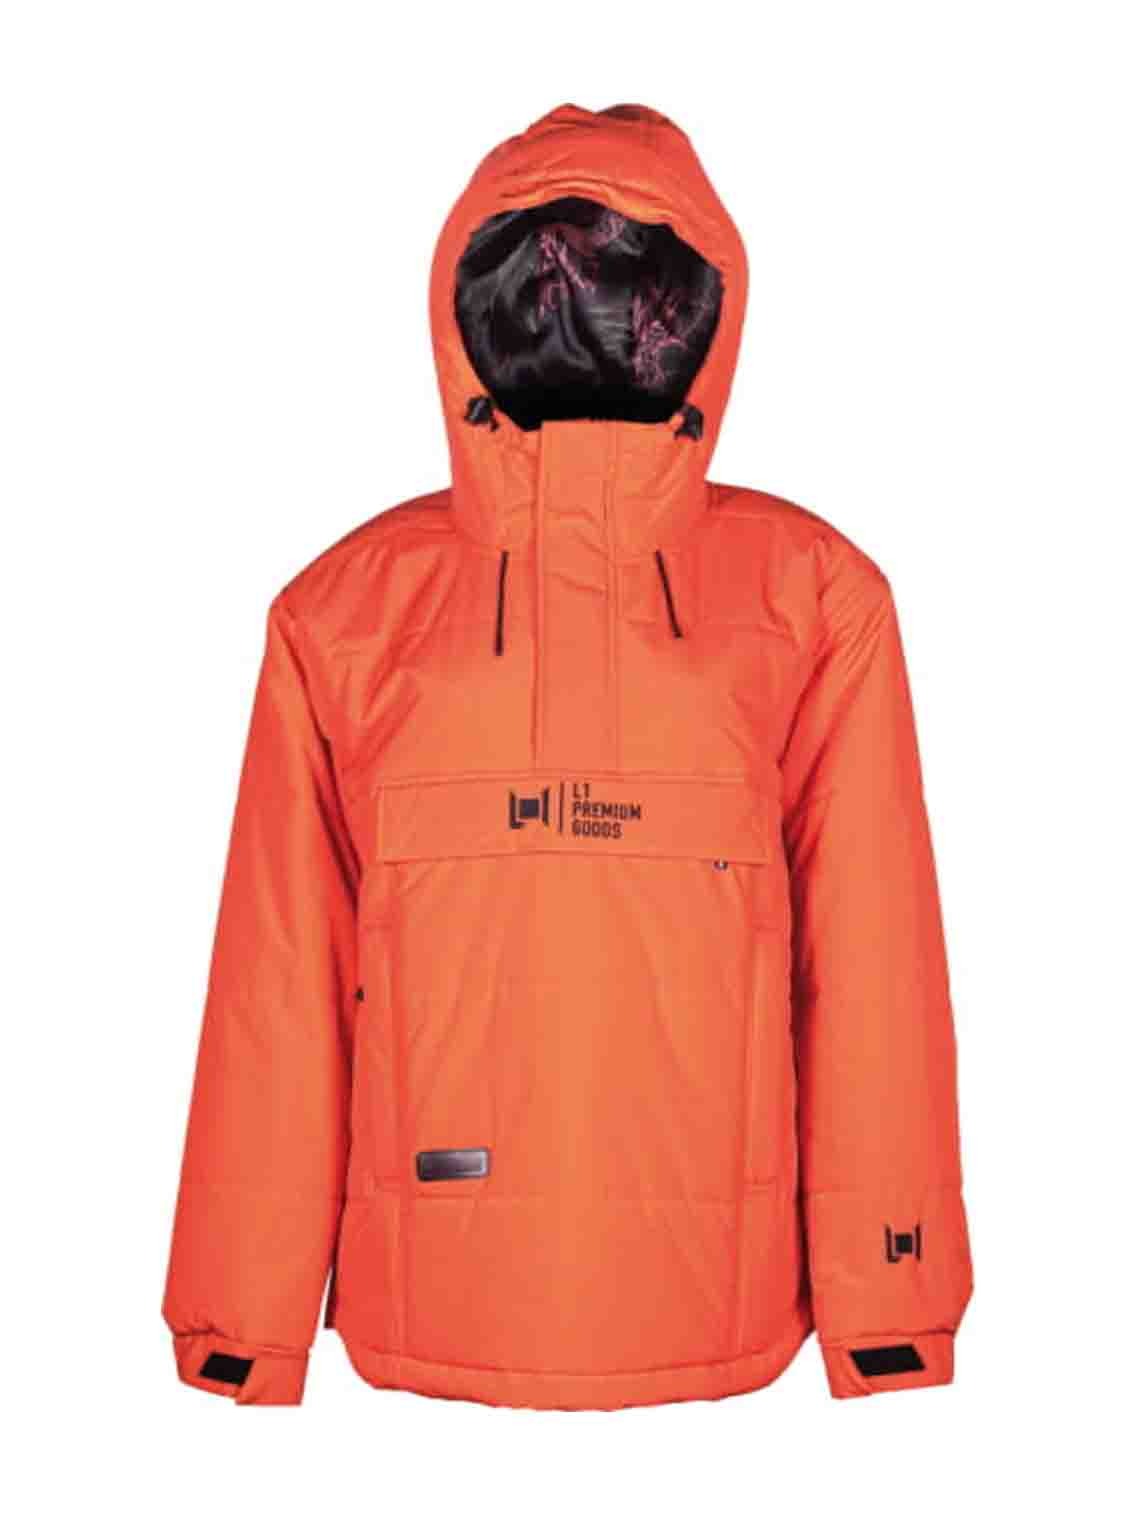 L1 21/22 Women's Outerwear